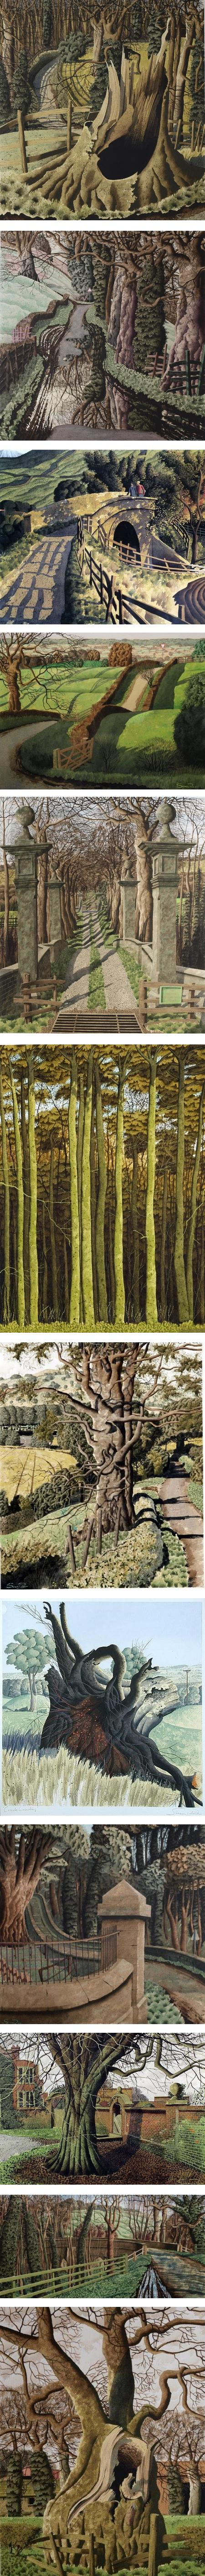 Simon Palmer, English landscapes in watercolor, gouache and ink